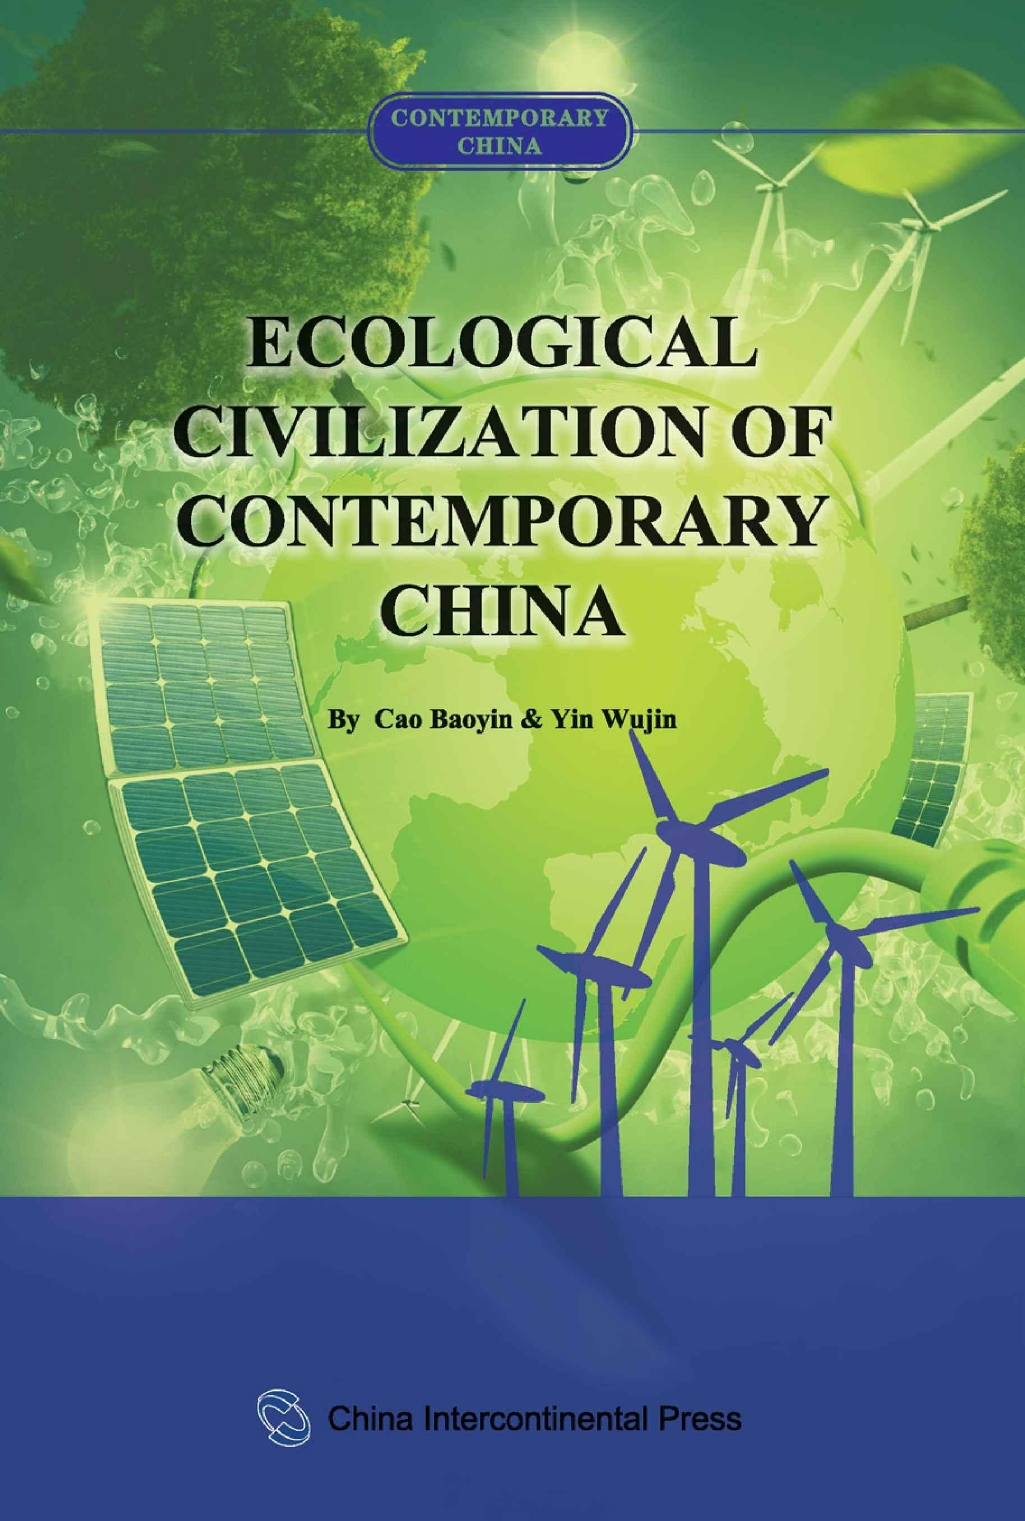 Ecological Civilization of Contemporary China